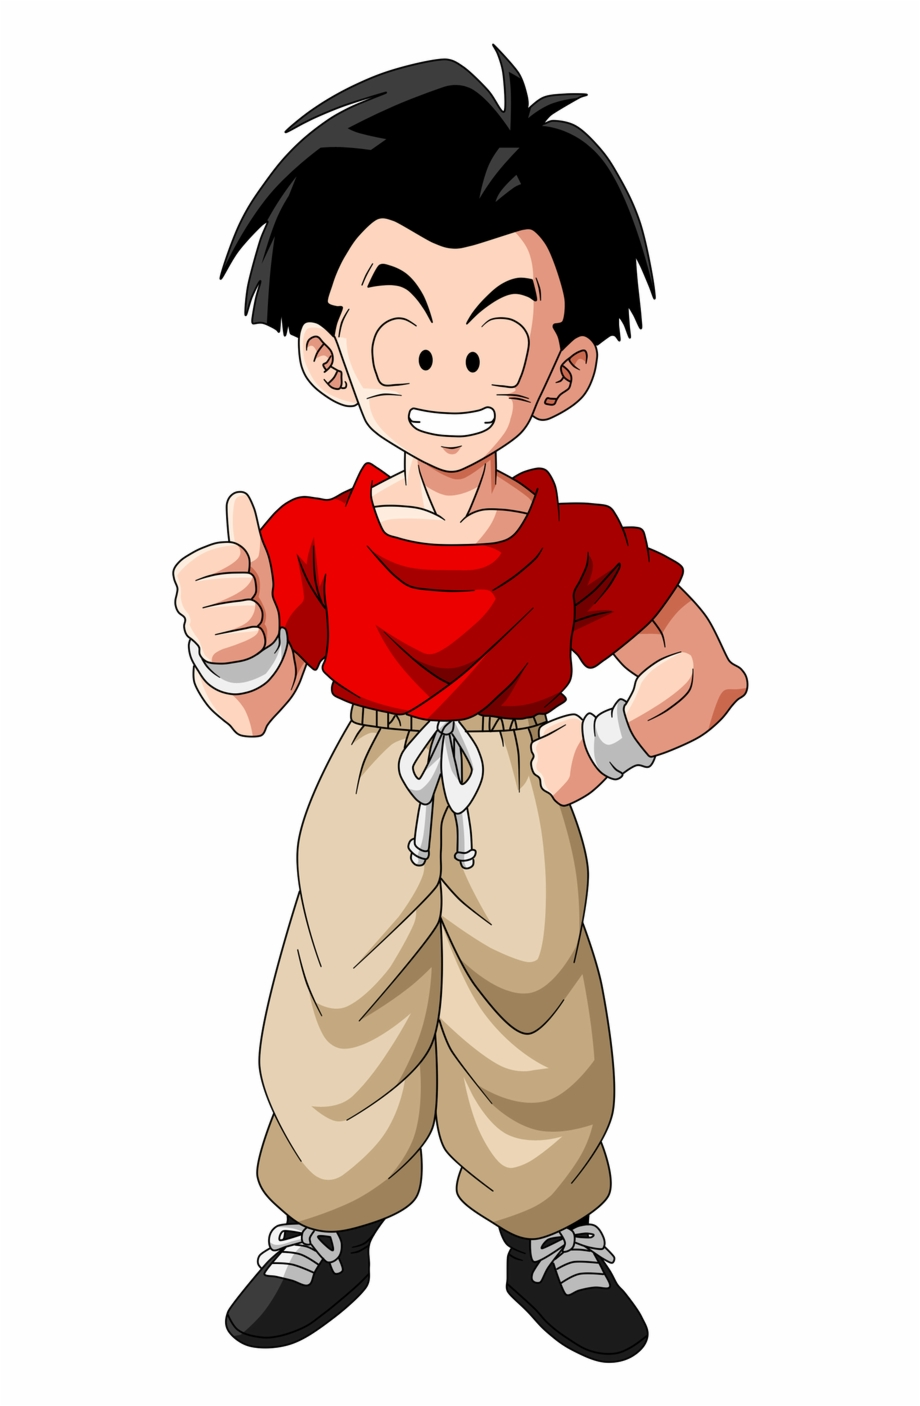 318 Kb Png Dragon Ball Krillin With Hair Transparent Png